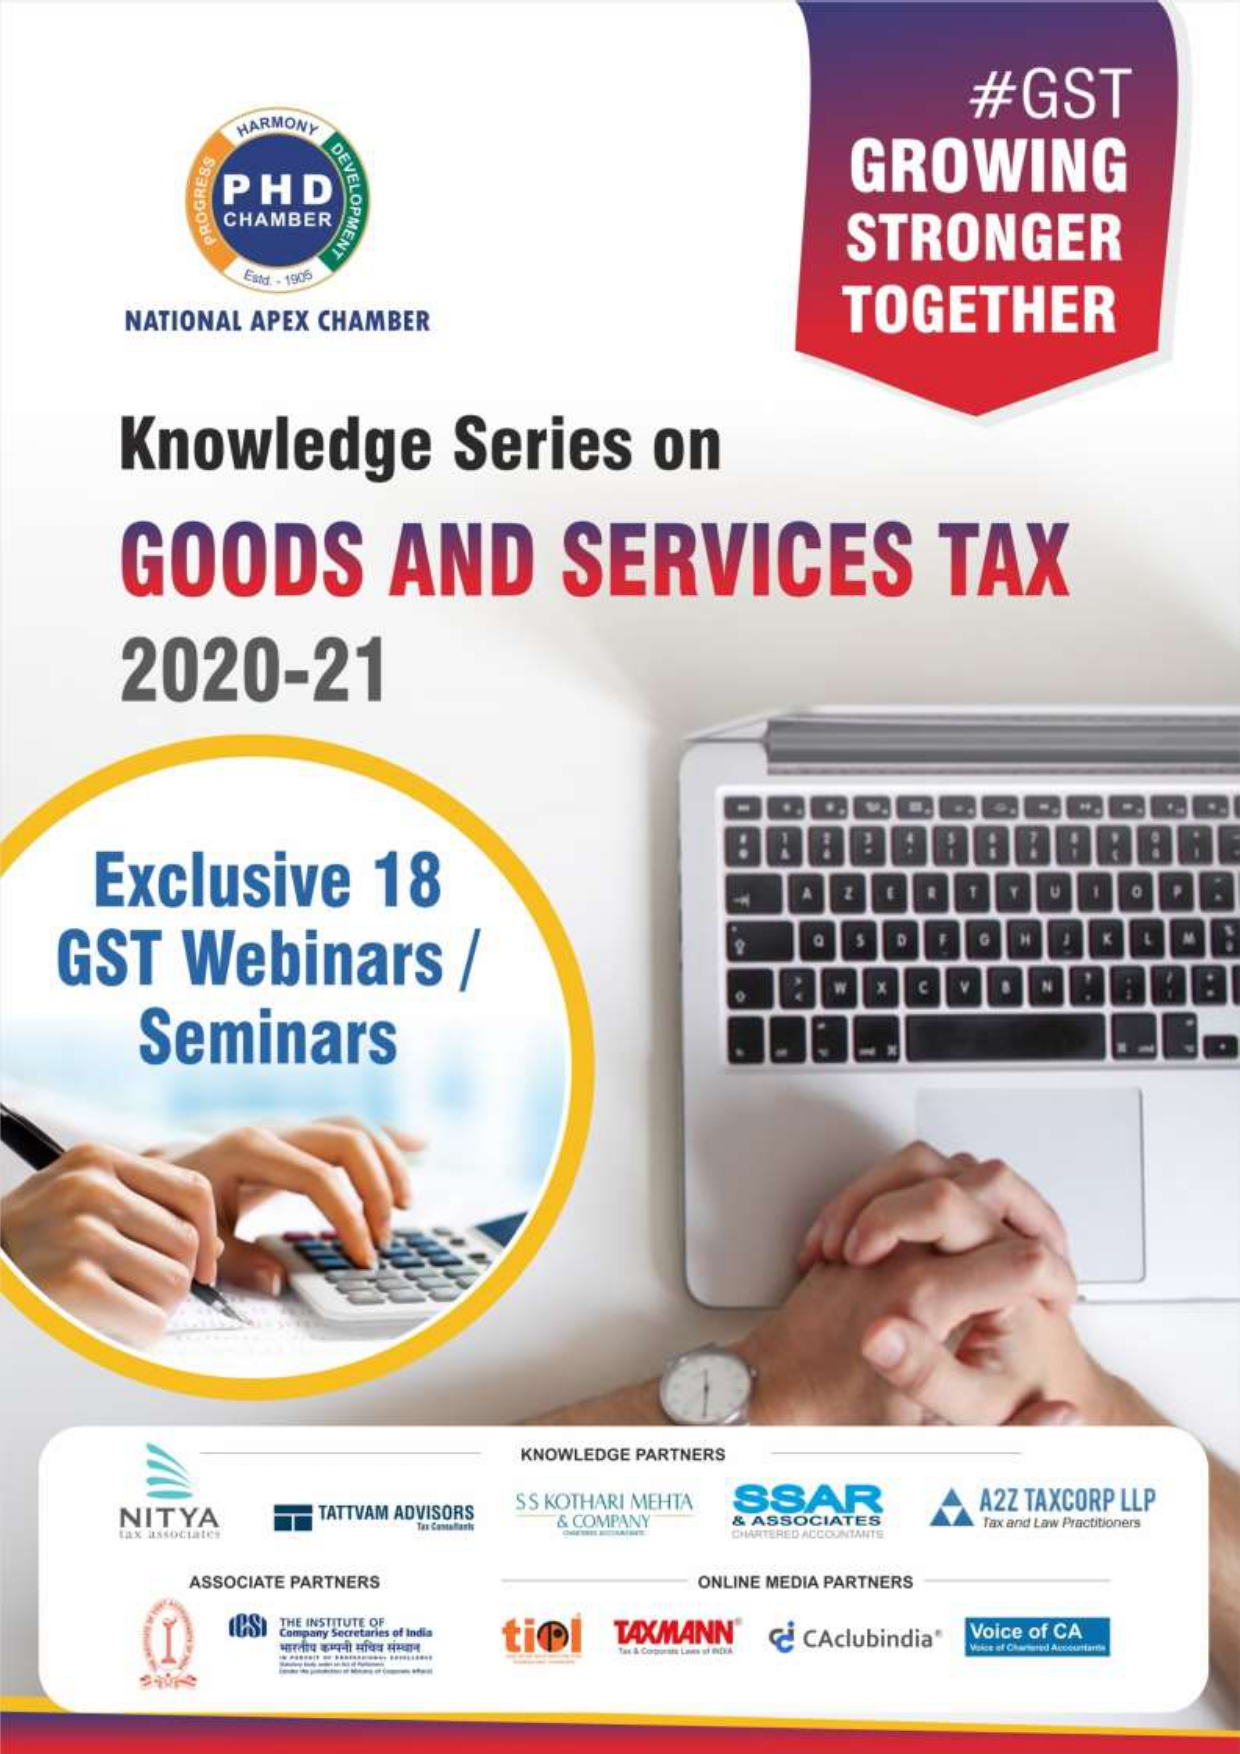 Knowledge Series on Goods & Services Tax 2020-21